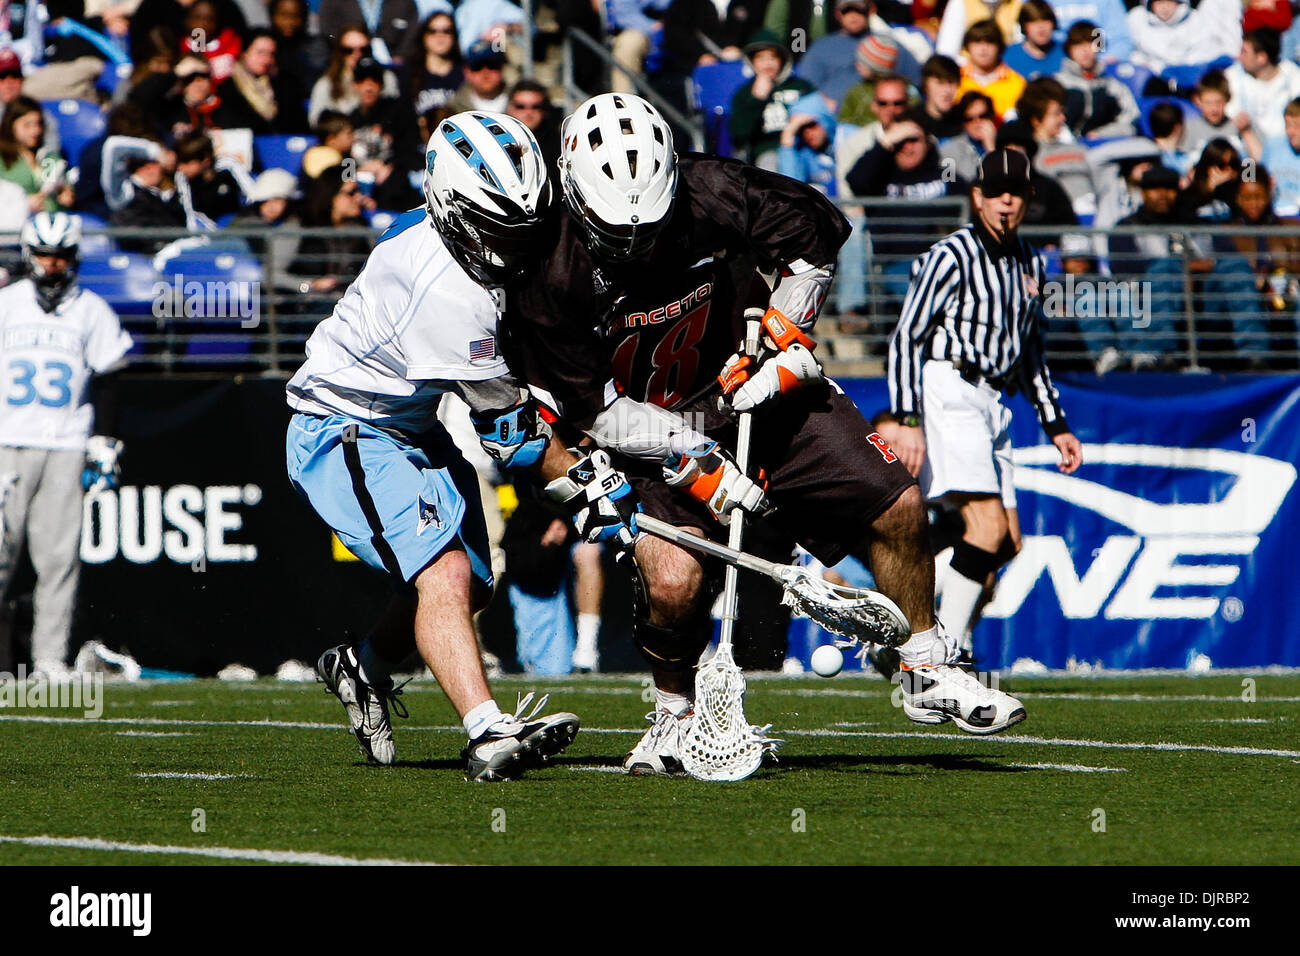 Mar. 06, 2010 - Baltimore, Maryland, U.S - 06 March 2010: Hopkins Midfield Matt Dolente #4 and Princeton Midfield Stock Photo